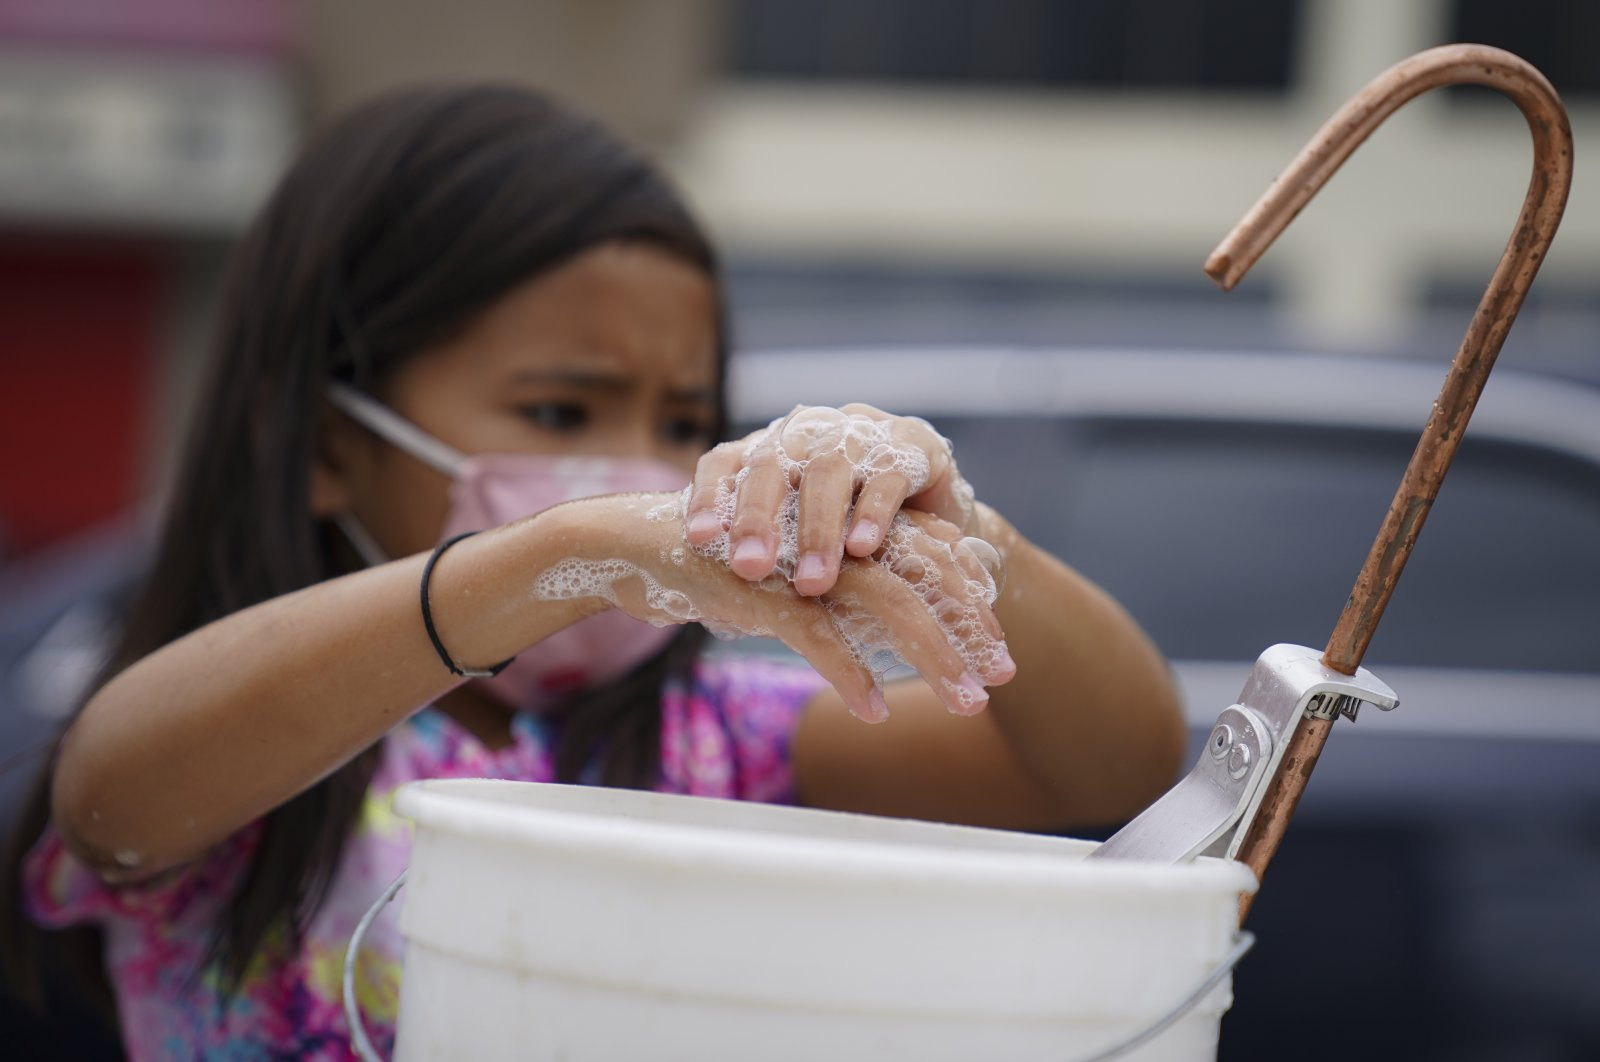 A student washes her hands on a blocked street before participating in an outdoor learning demonstration to display methods schools can use to continue on-site education during the coronavirus pandemic, Sept. 2, 2020, at P.S. 15 in the Brooklyn borough of New York. (AP Photo)